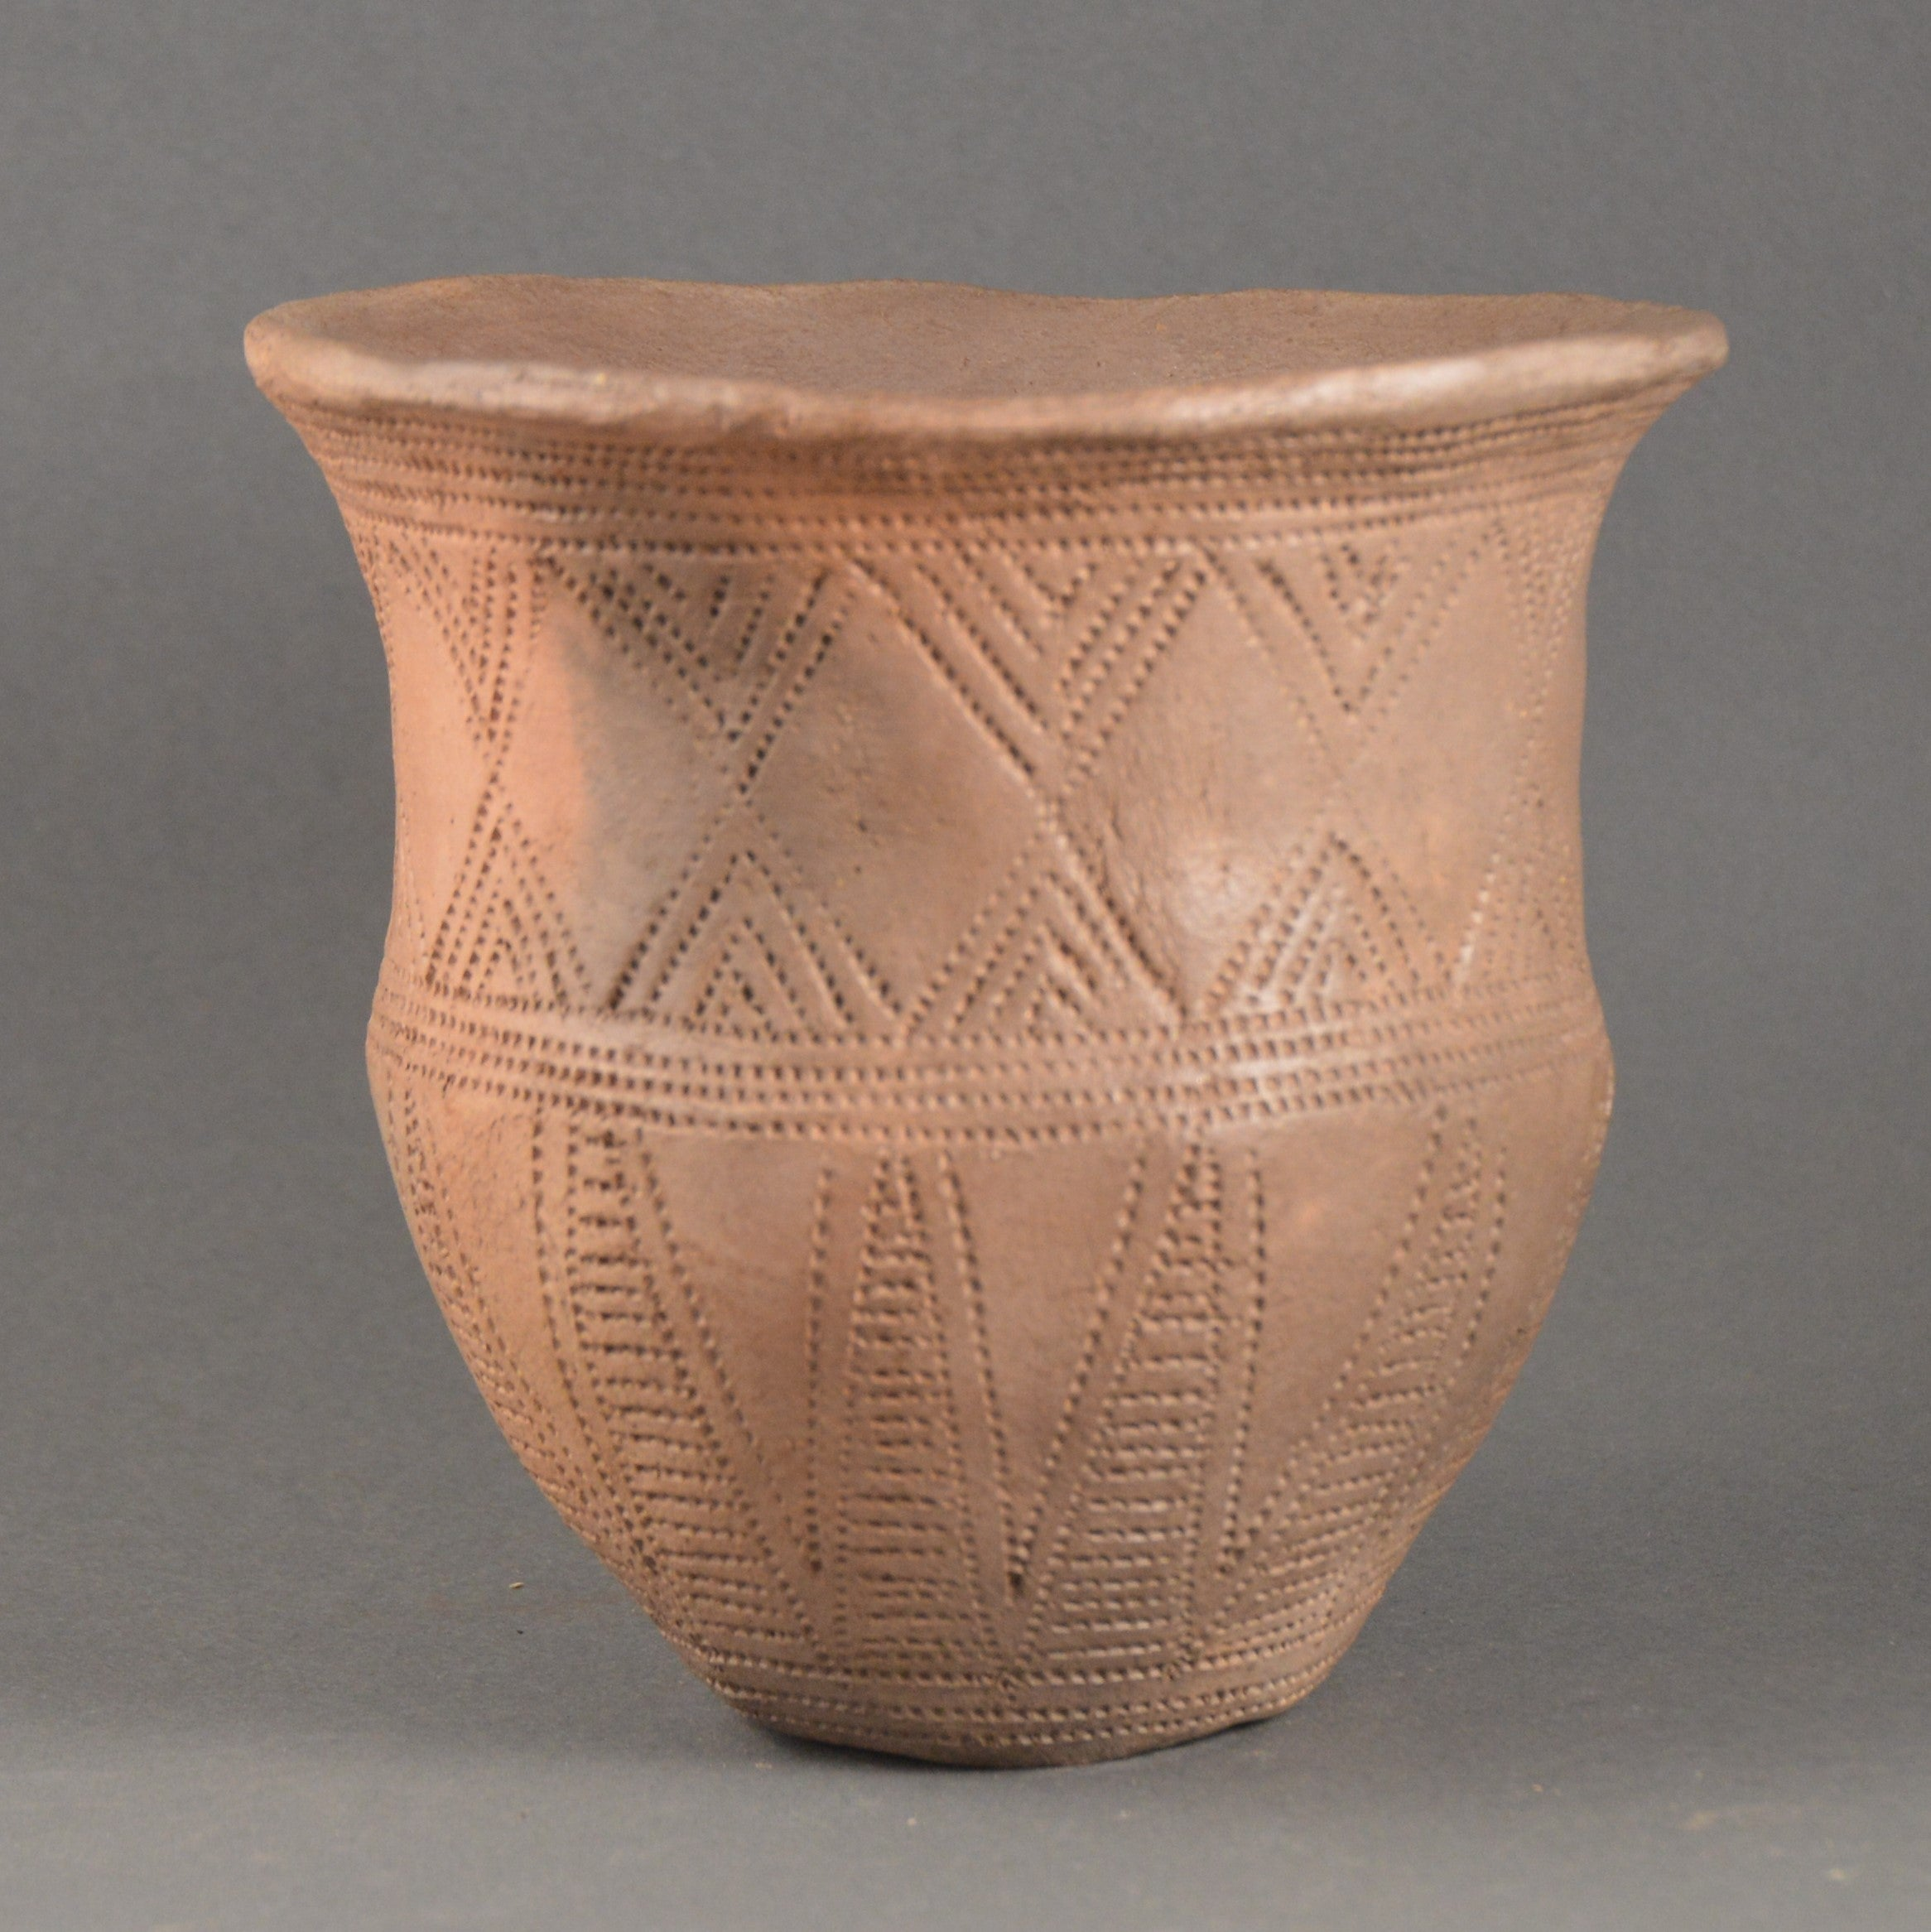 Bronze Age Beaker, Comb Decorated